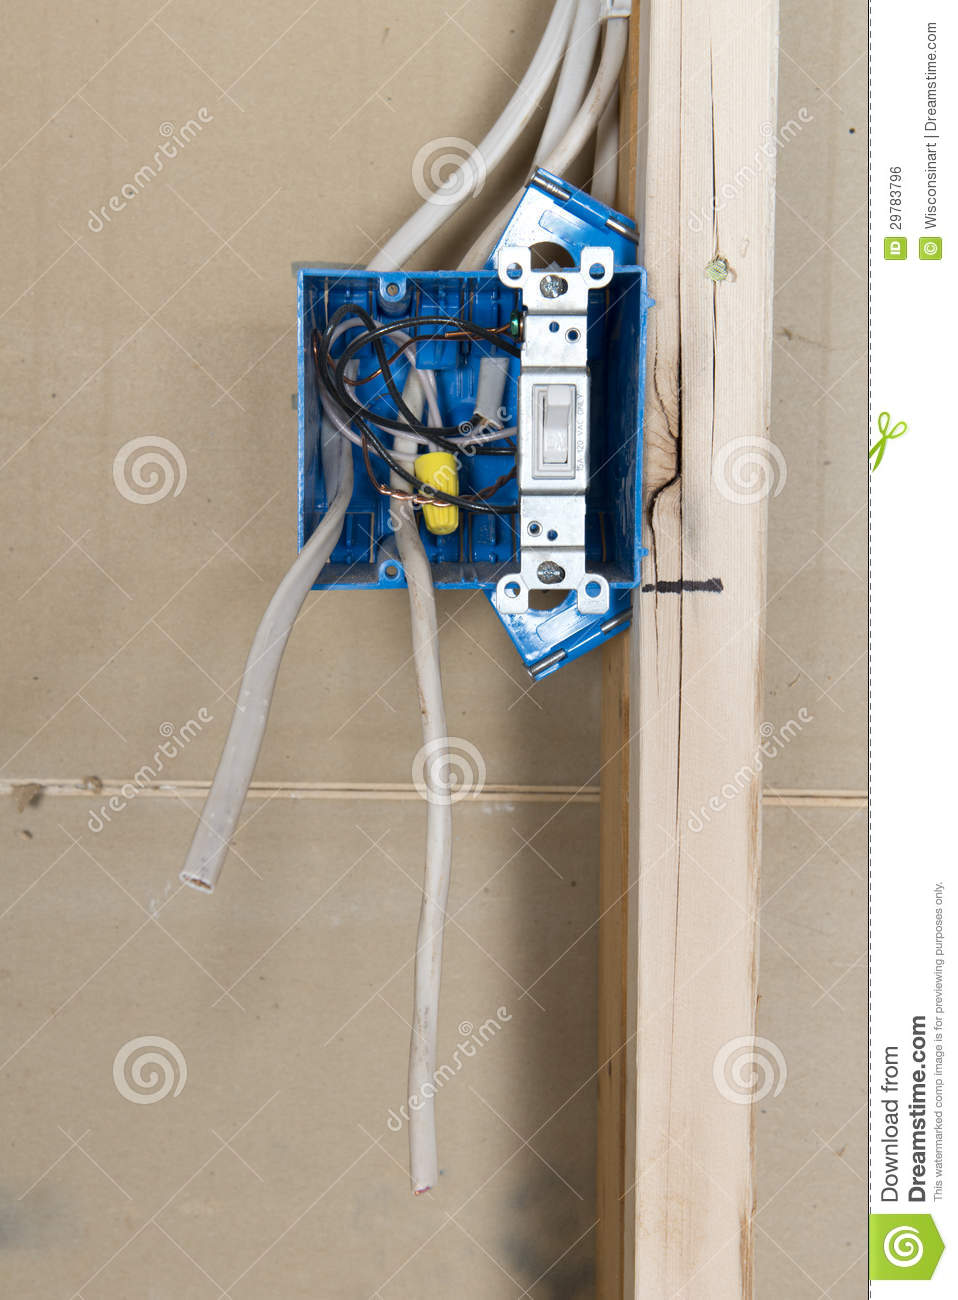 Electrical Home Wiring Outlet Box Stock Photo Image Of Improvement For